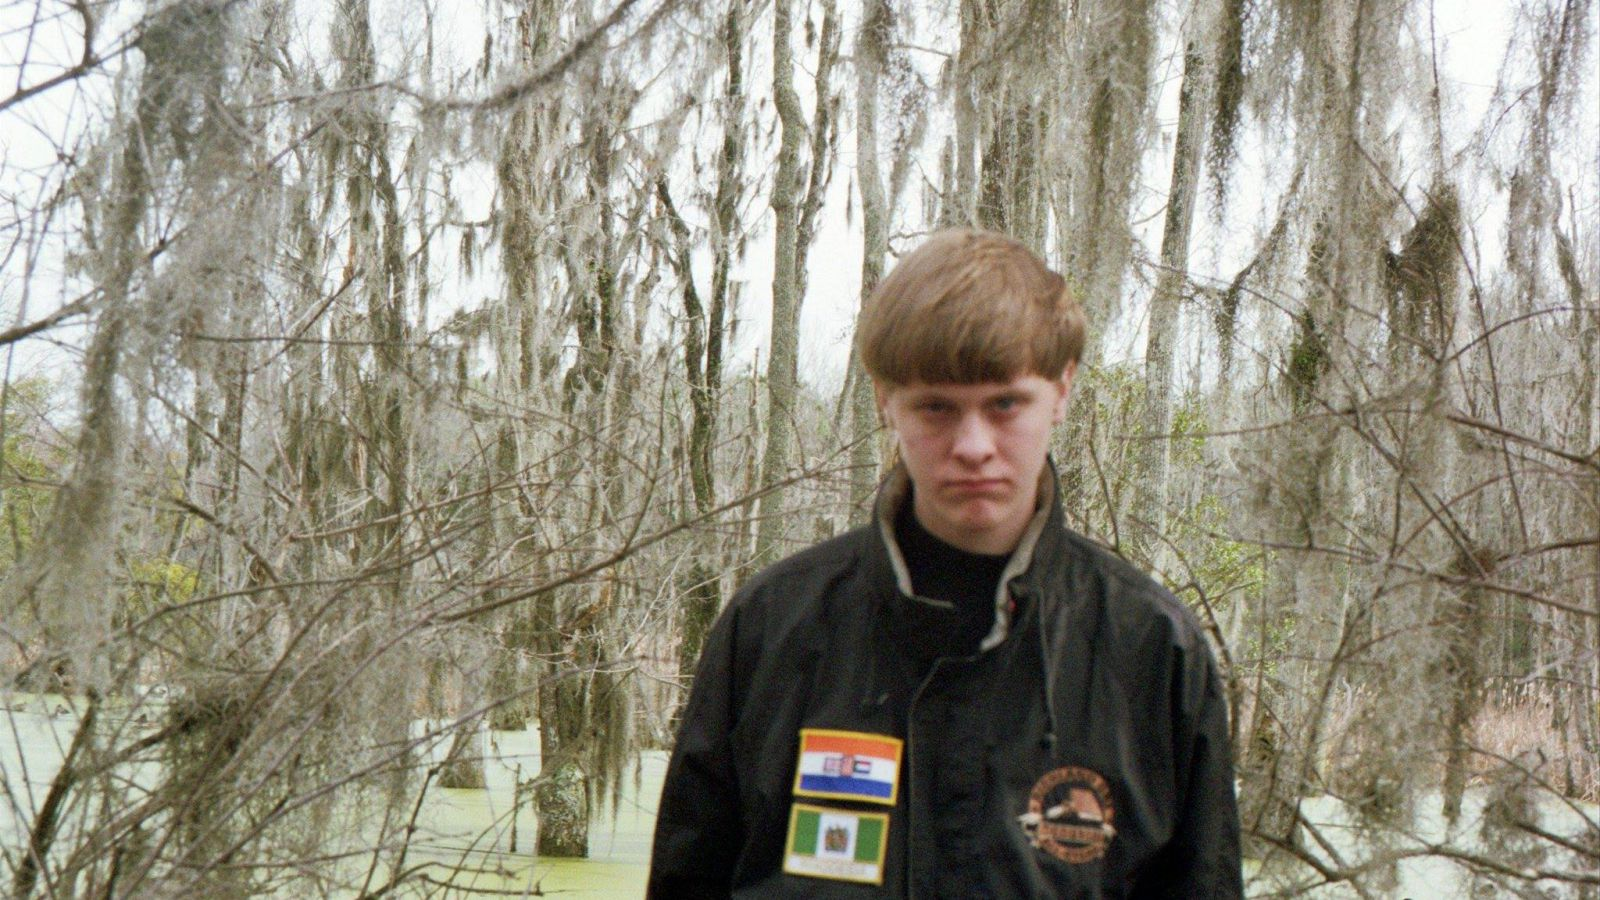 15-0618 Charleston Shooter 1